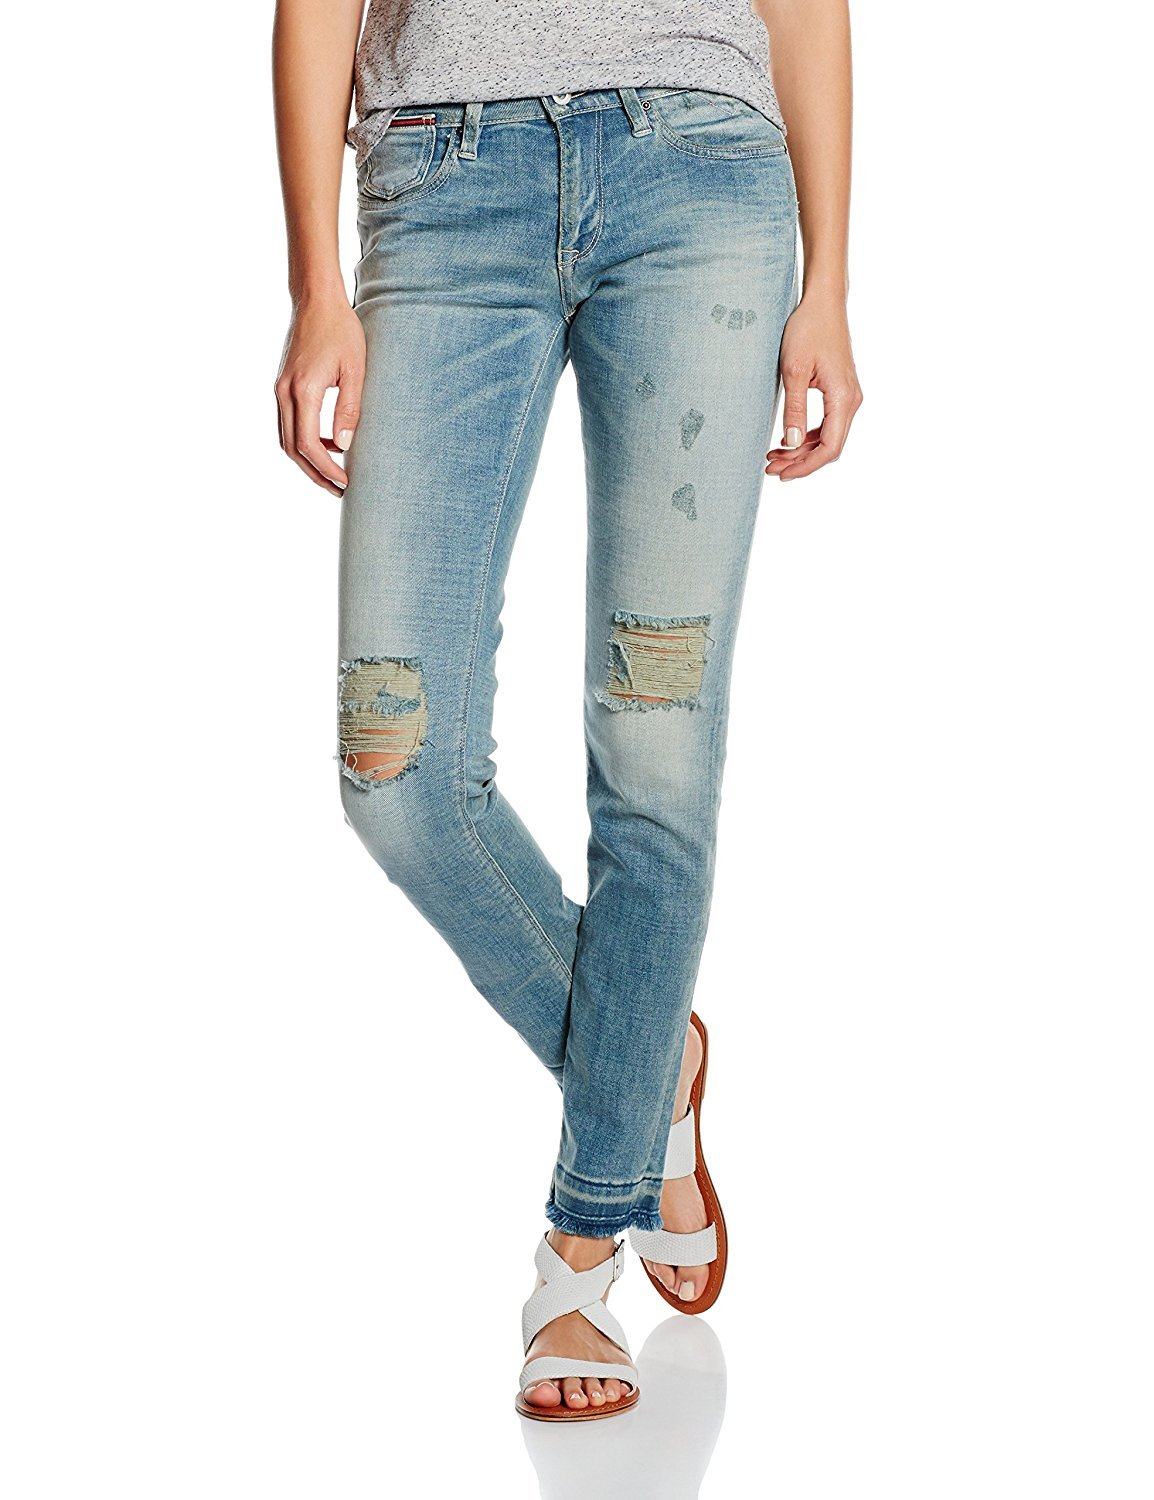 Hilfiger Denim Women's Mid Rise Slim Naomi Jean (28 x 32, Blue Wash)